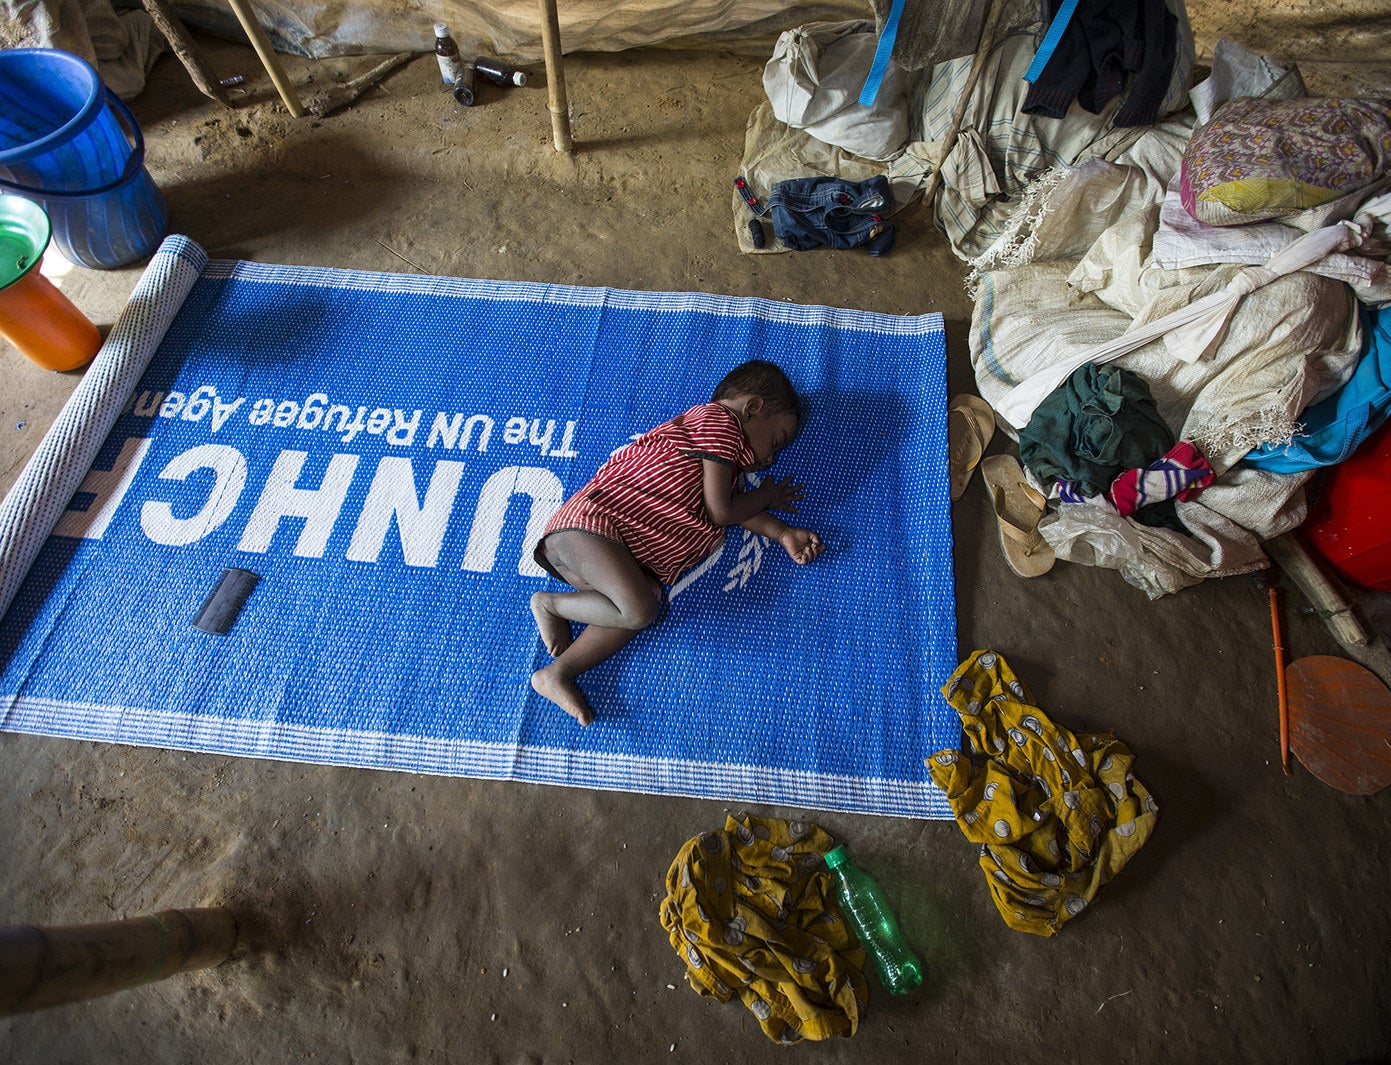 A child sleeps on a United Nations High Commissioner for Refugees mat at a refugee camp in Cox's Bazar, Bangladesh, on Dec. 27.